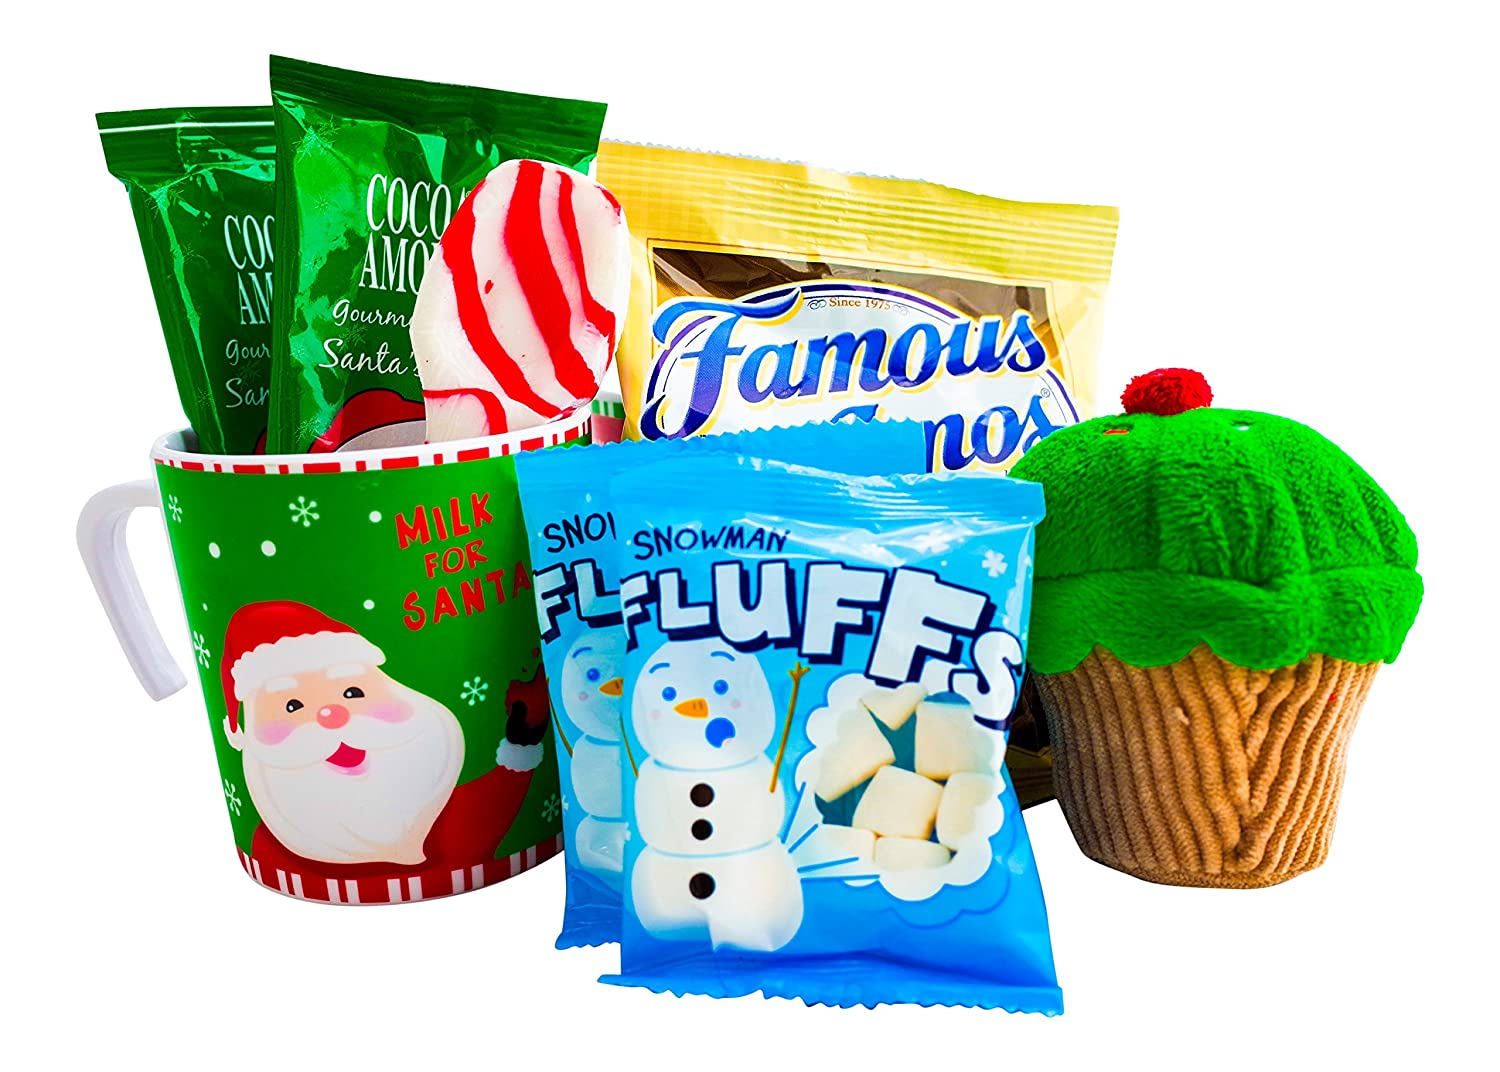 Christmas Hot Cocoa and Cookies Gift For Kids With Mug, Hot Chocolate, Marshmallows, Cookies, Xmas Plush, and a Candy Cane Spoon - Best Gift Idea For Children or Grandchildren(Santa)